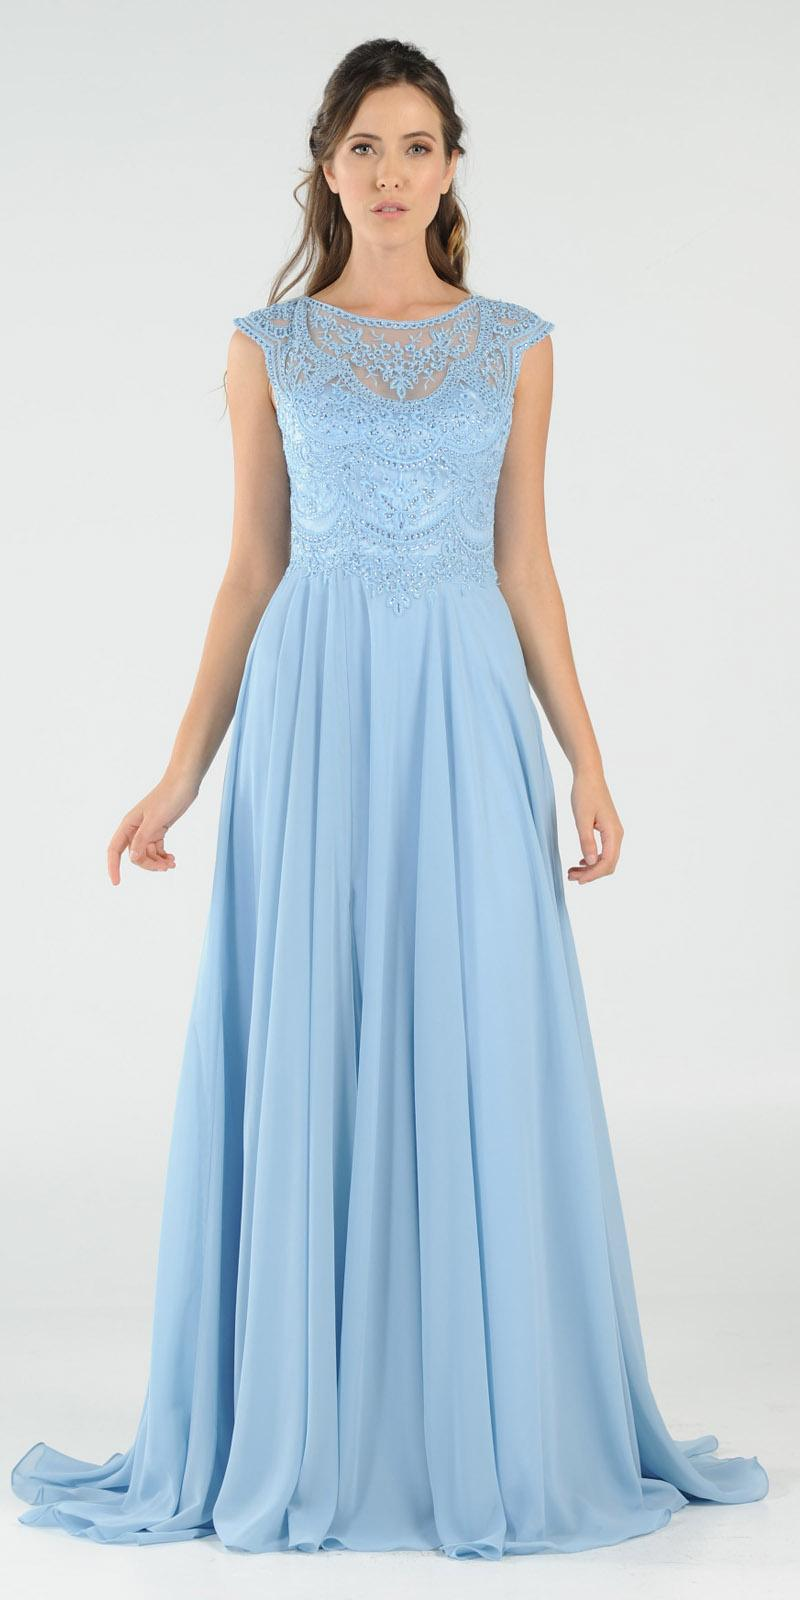 Poly USA 8254 Ice Blue Cap Sleeves Embroidered Long Formal Dress ...